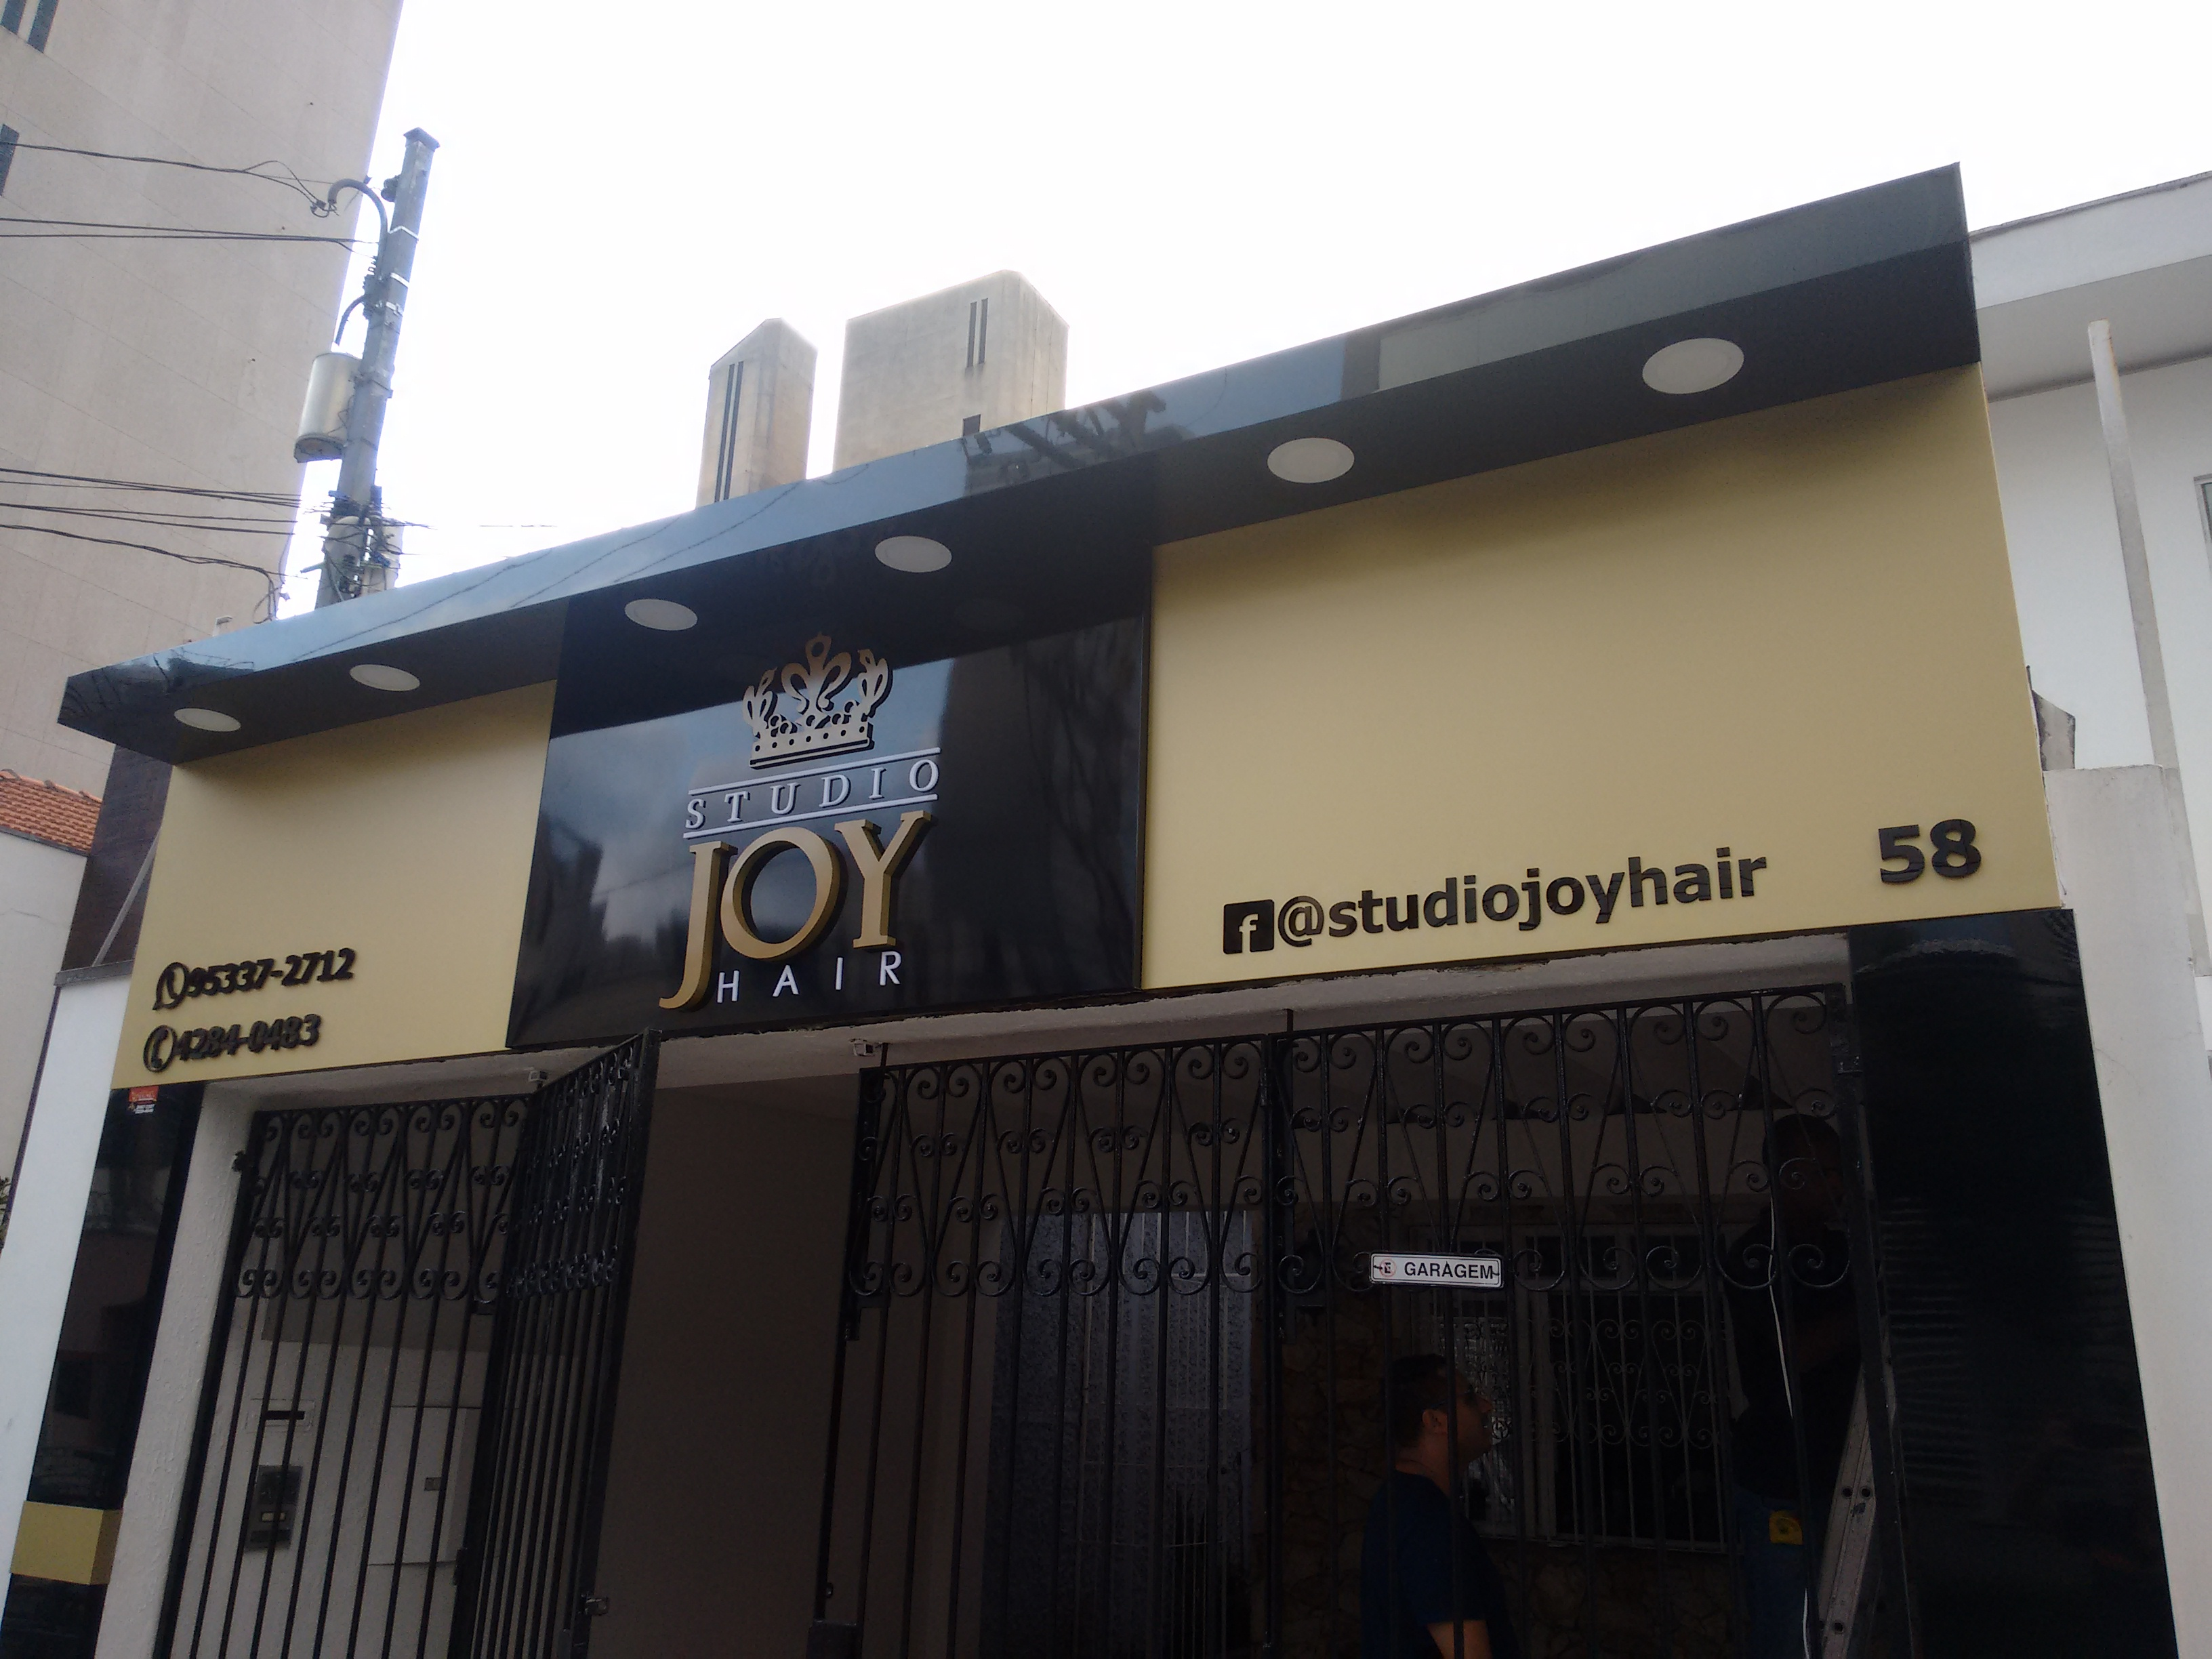 Studio Joy Hair